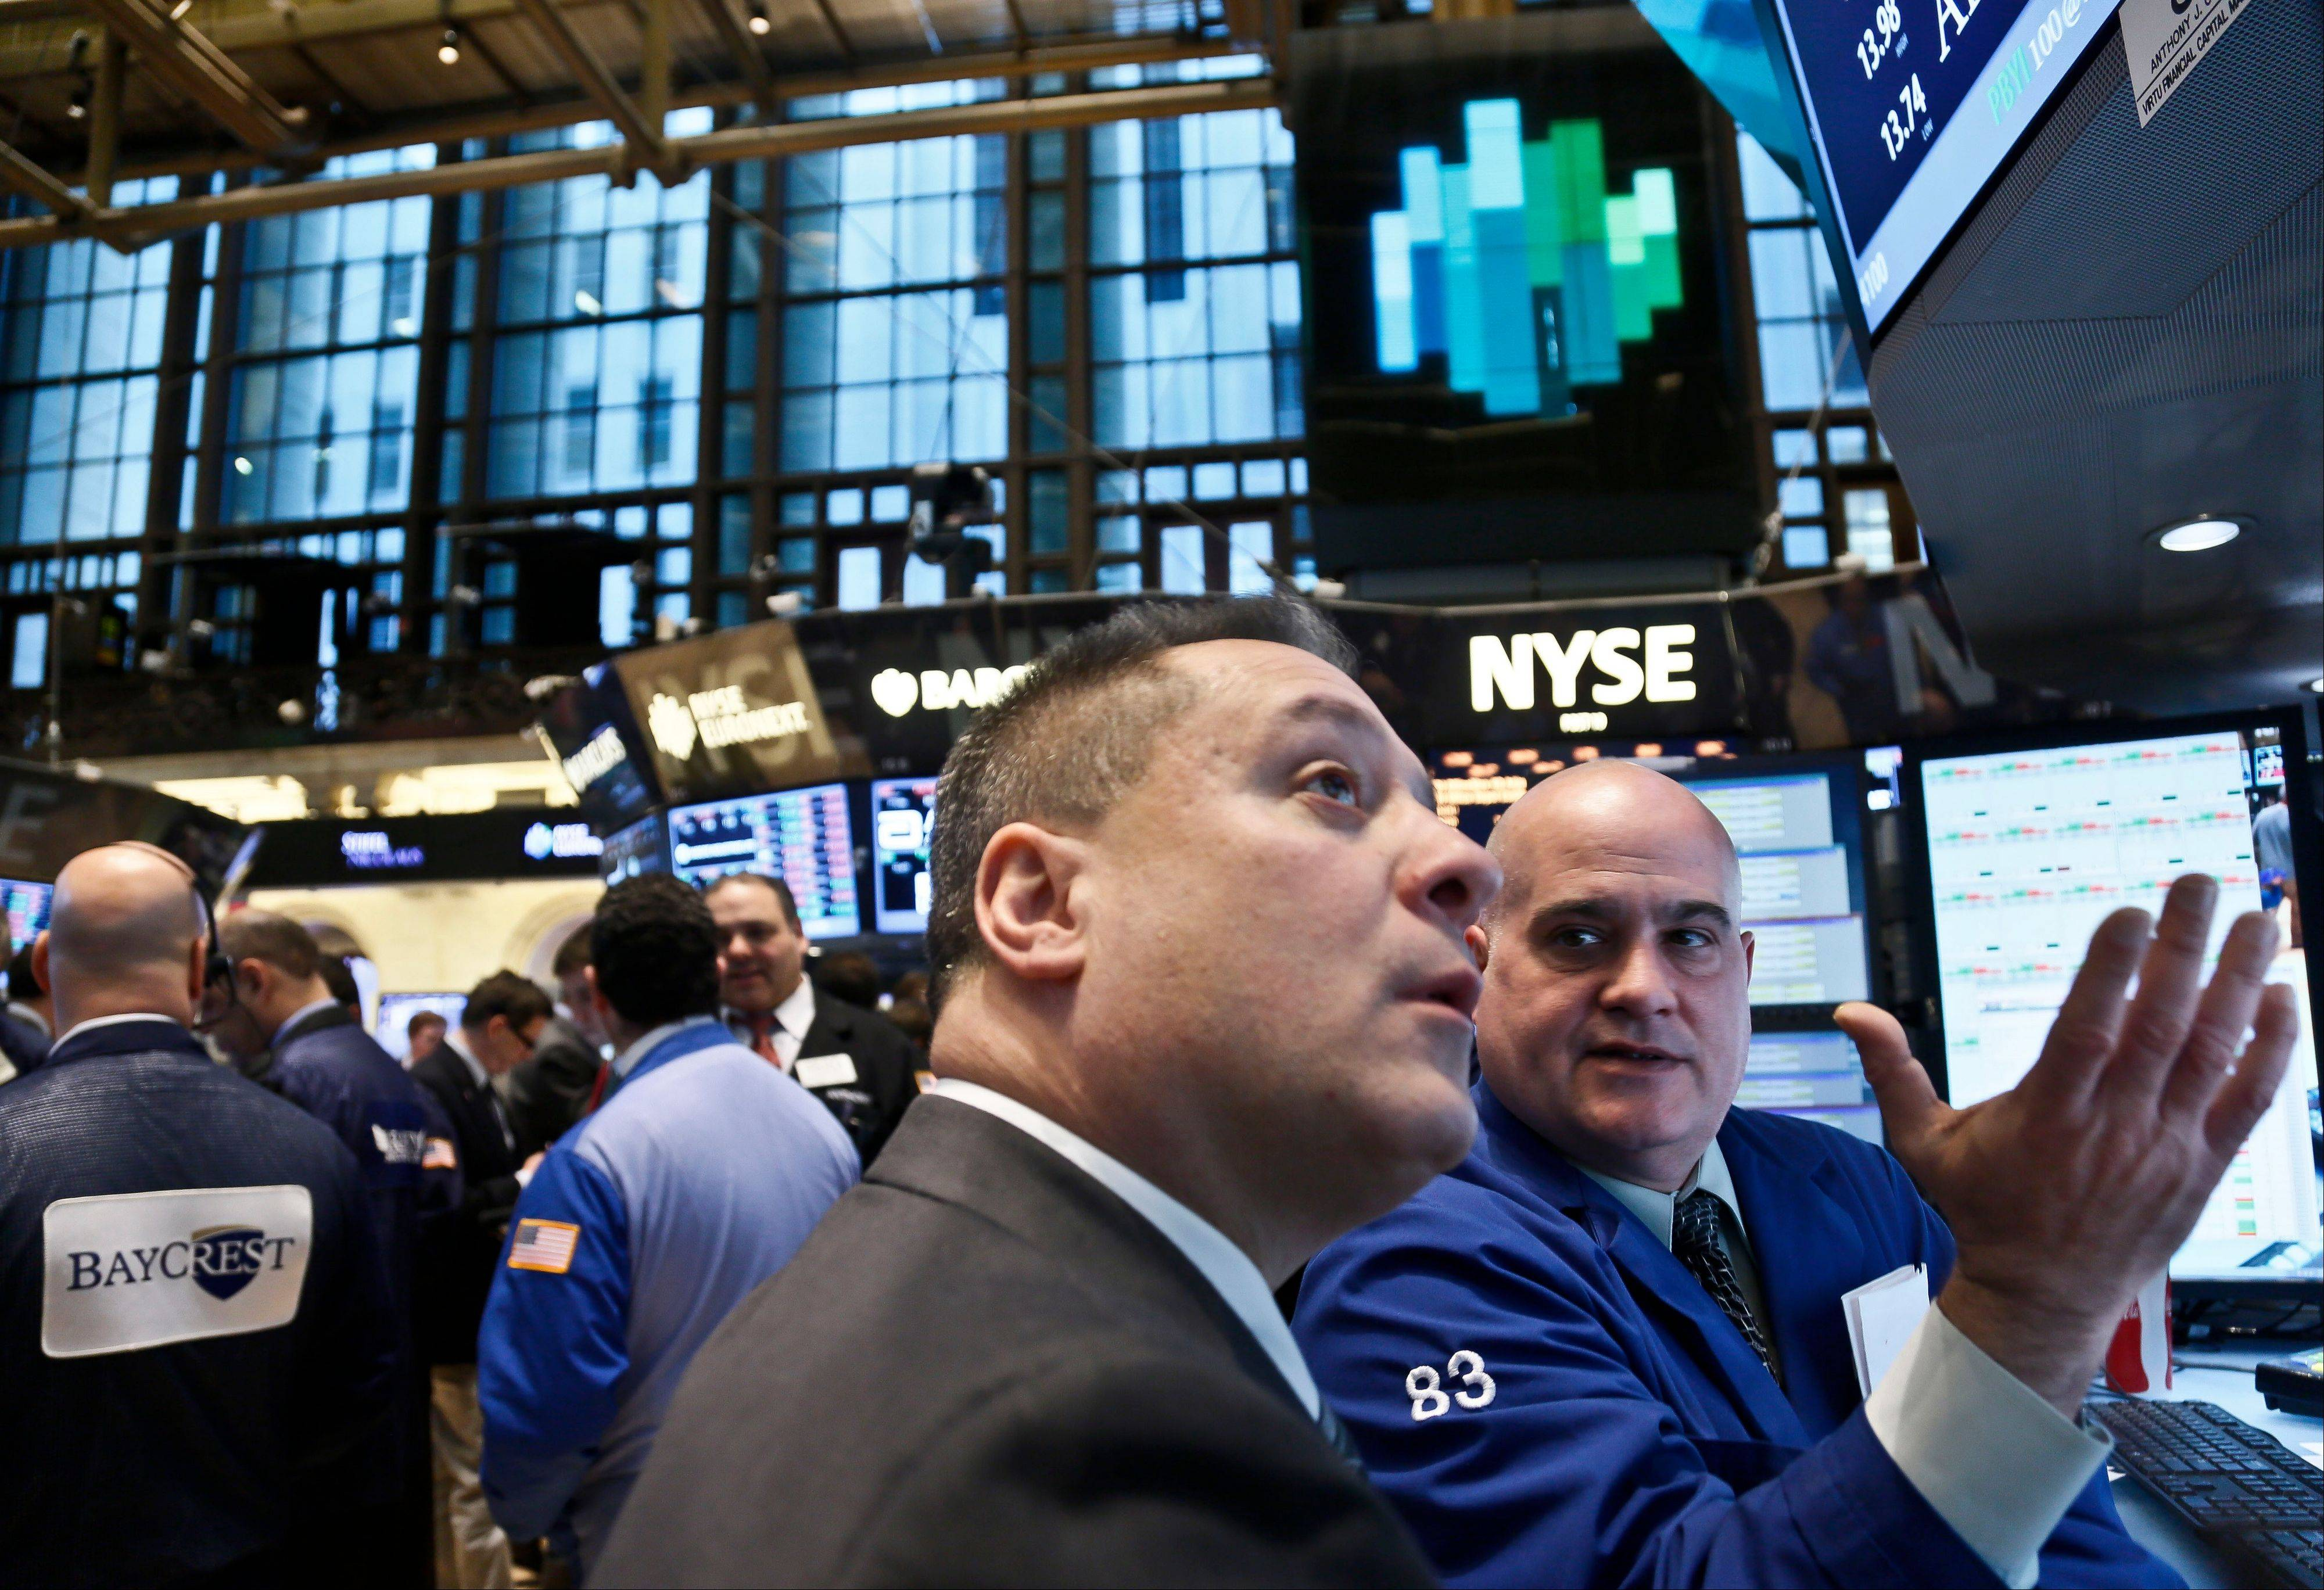 ASSOCIATED PRESS U.S. stocks fell from five-year highs, giving the Standard & Poor�s 500 Index its biggest decline since November, as minutes from the Federal Reserve�s last meeting showed a debate over further stimulus action.